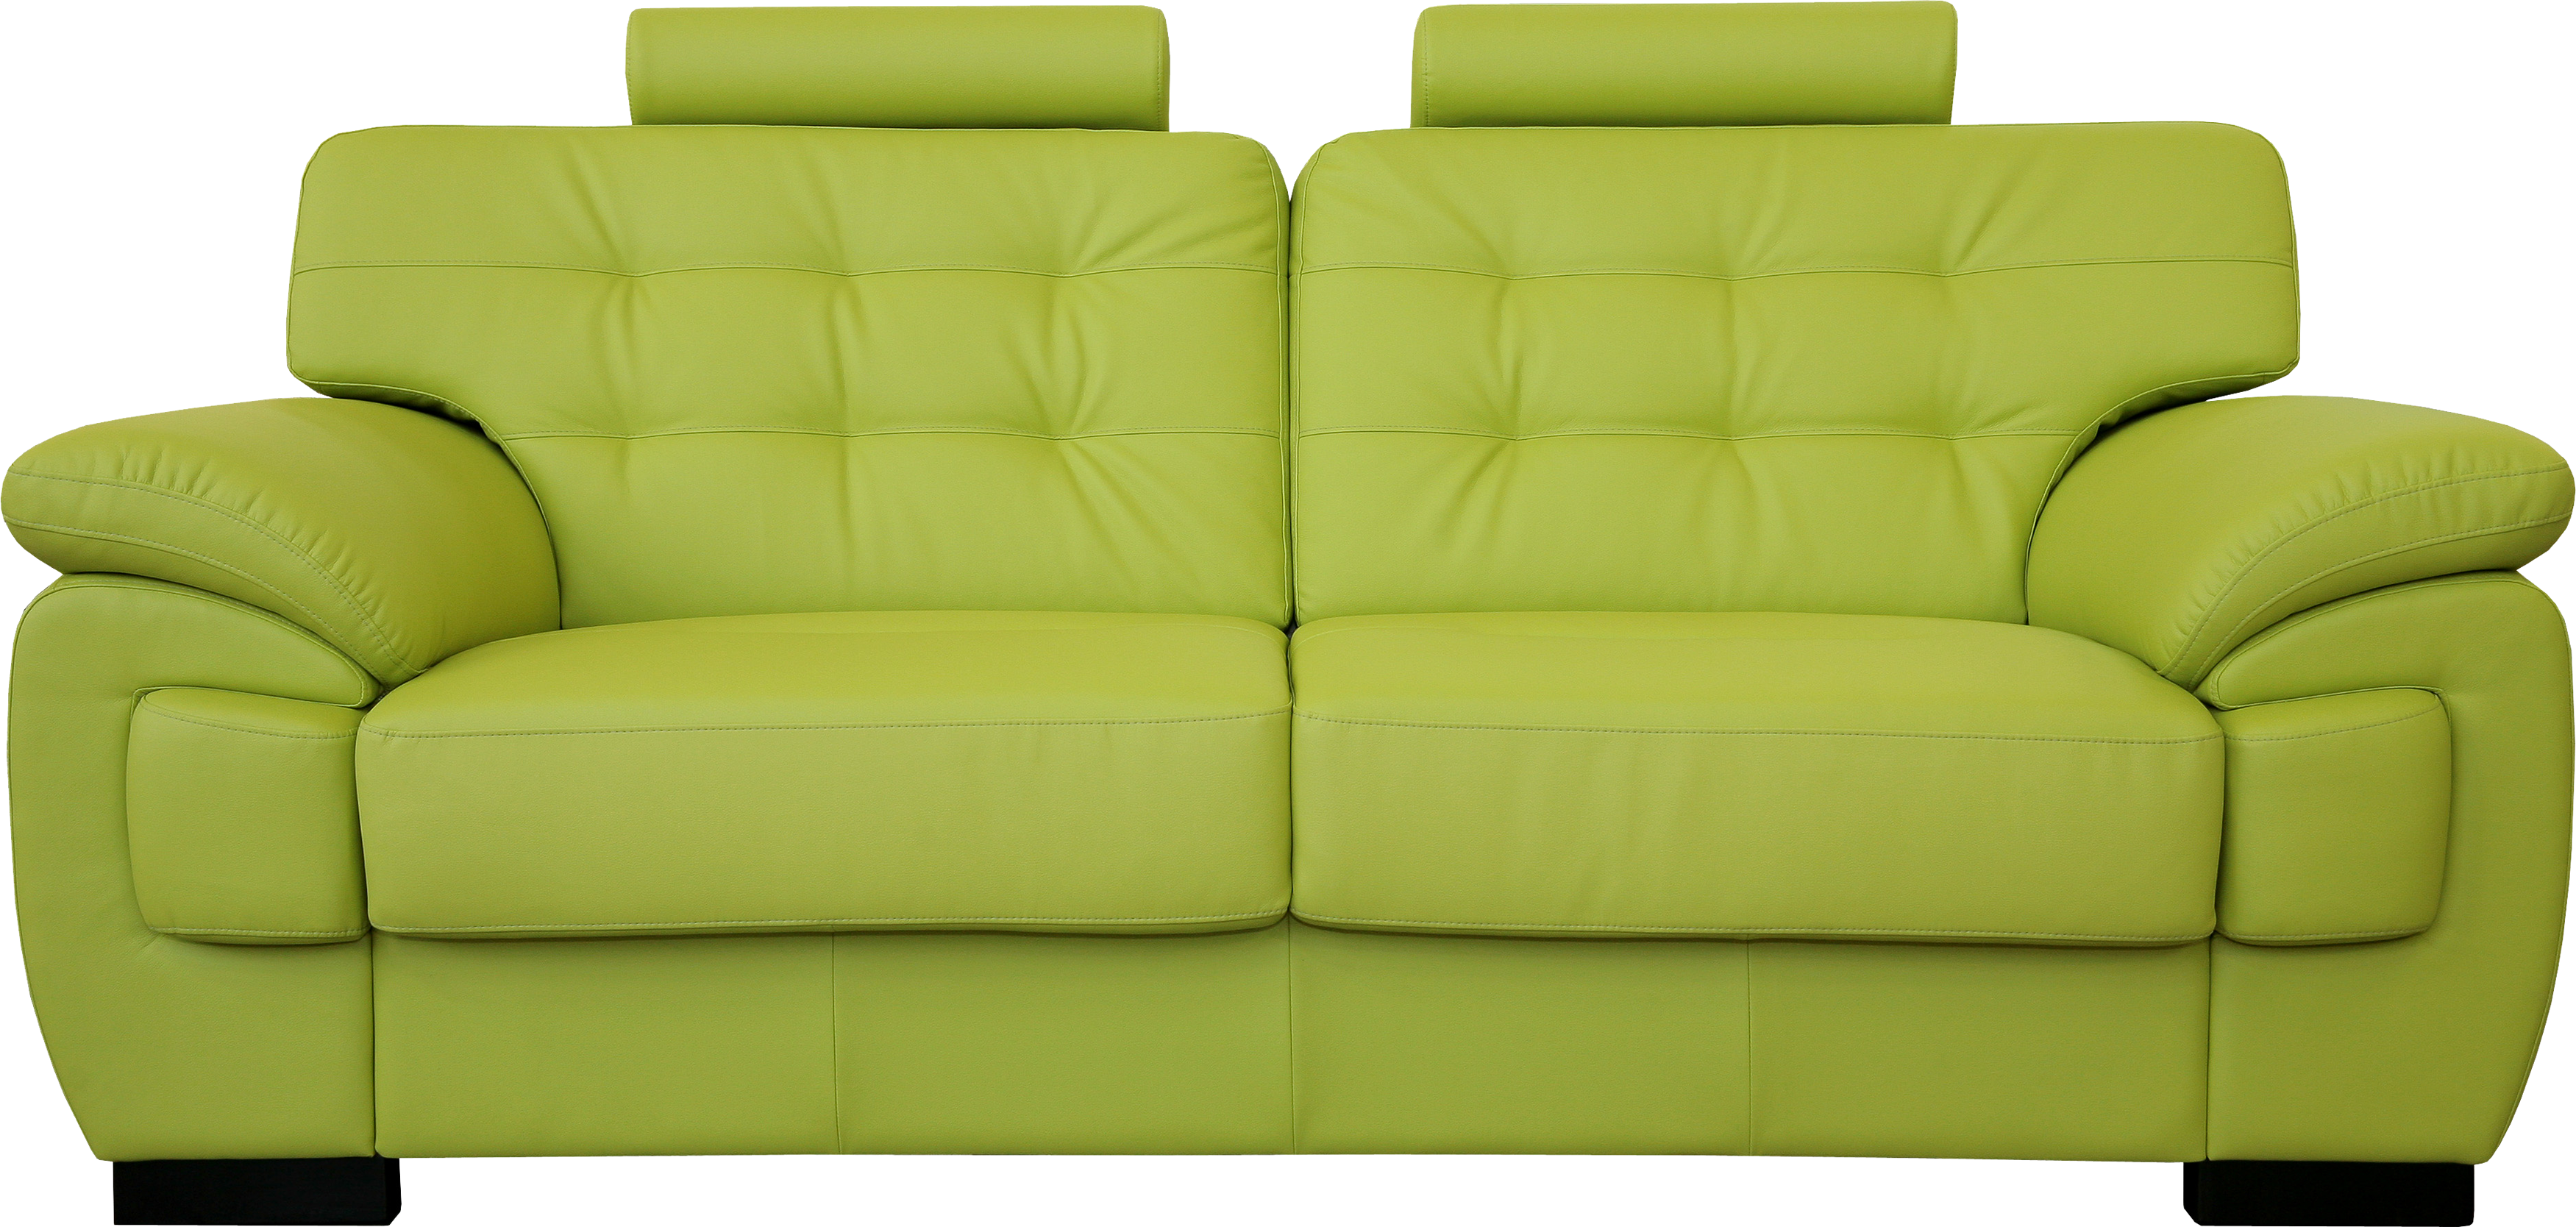 Green sofa PNG image - PNG HD Of A Bed